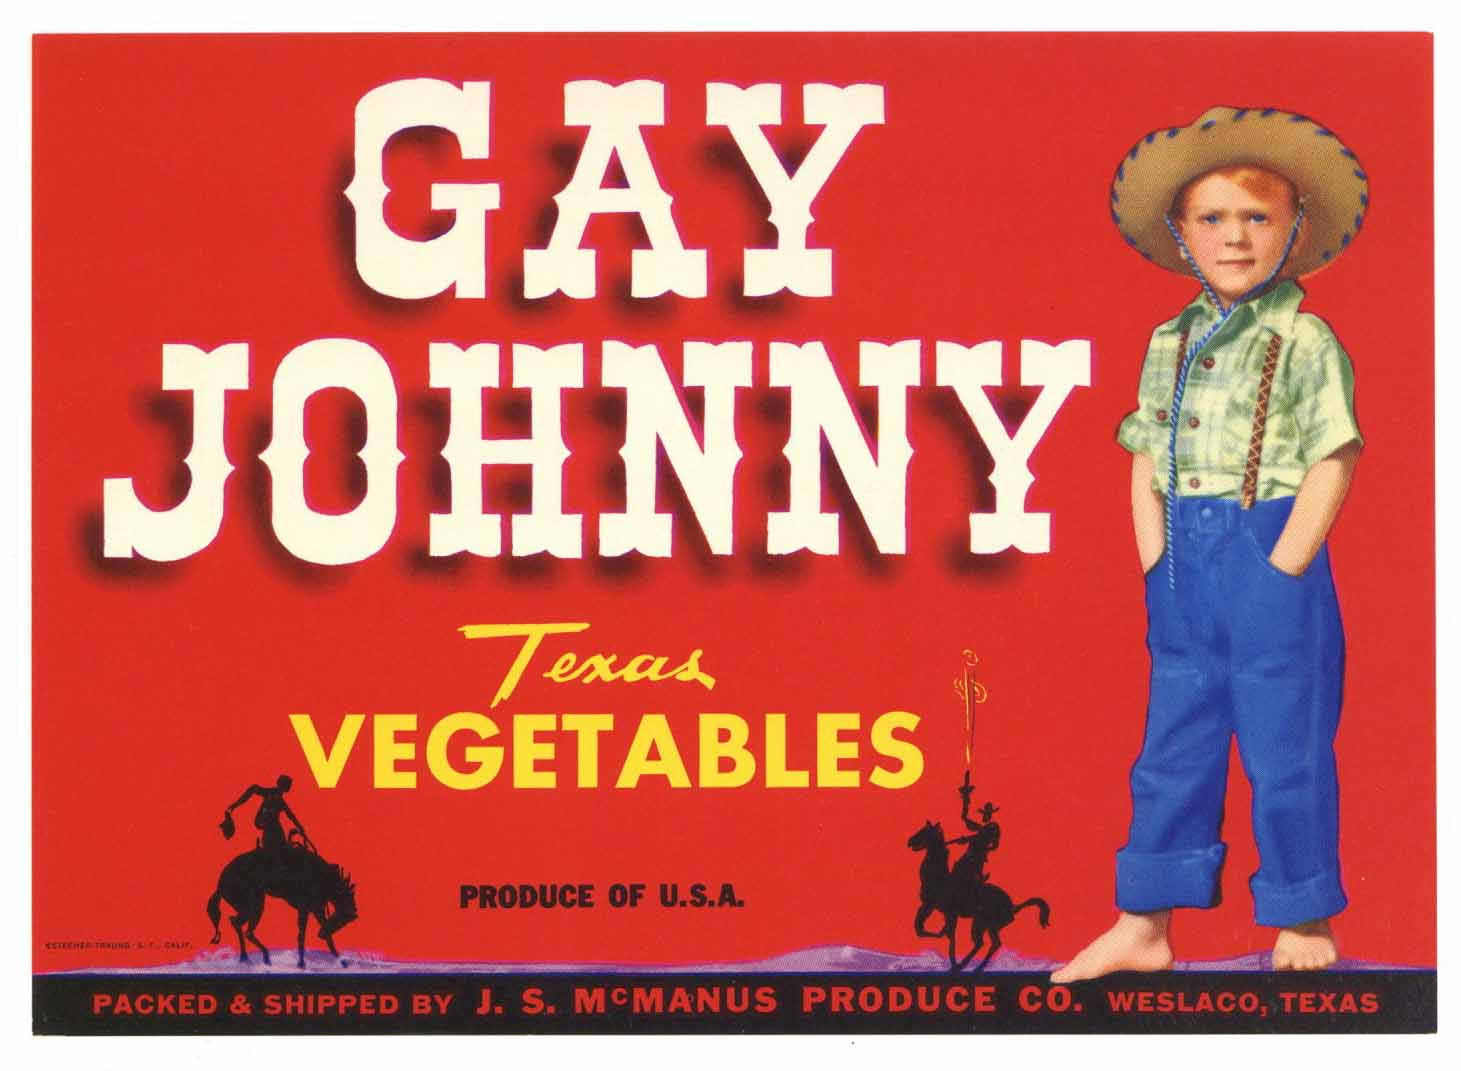 Gay Johnny Brand Vintage Weslaco Texas Vegetable Crate Label